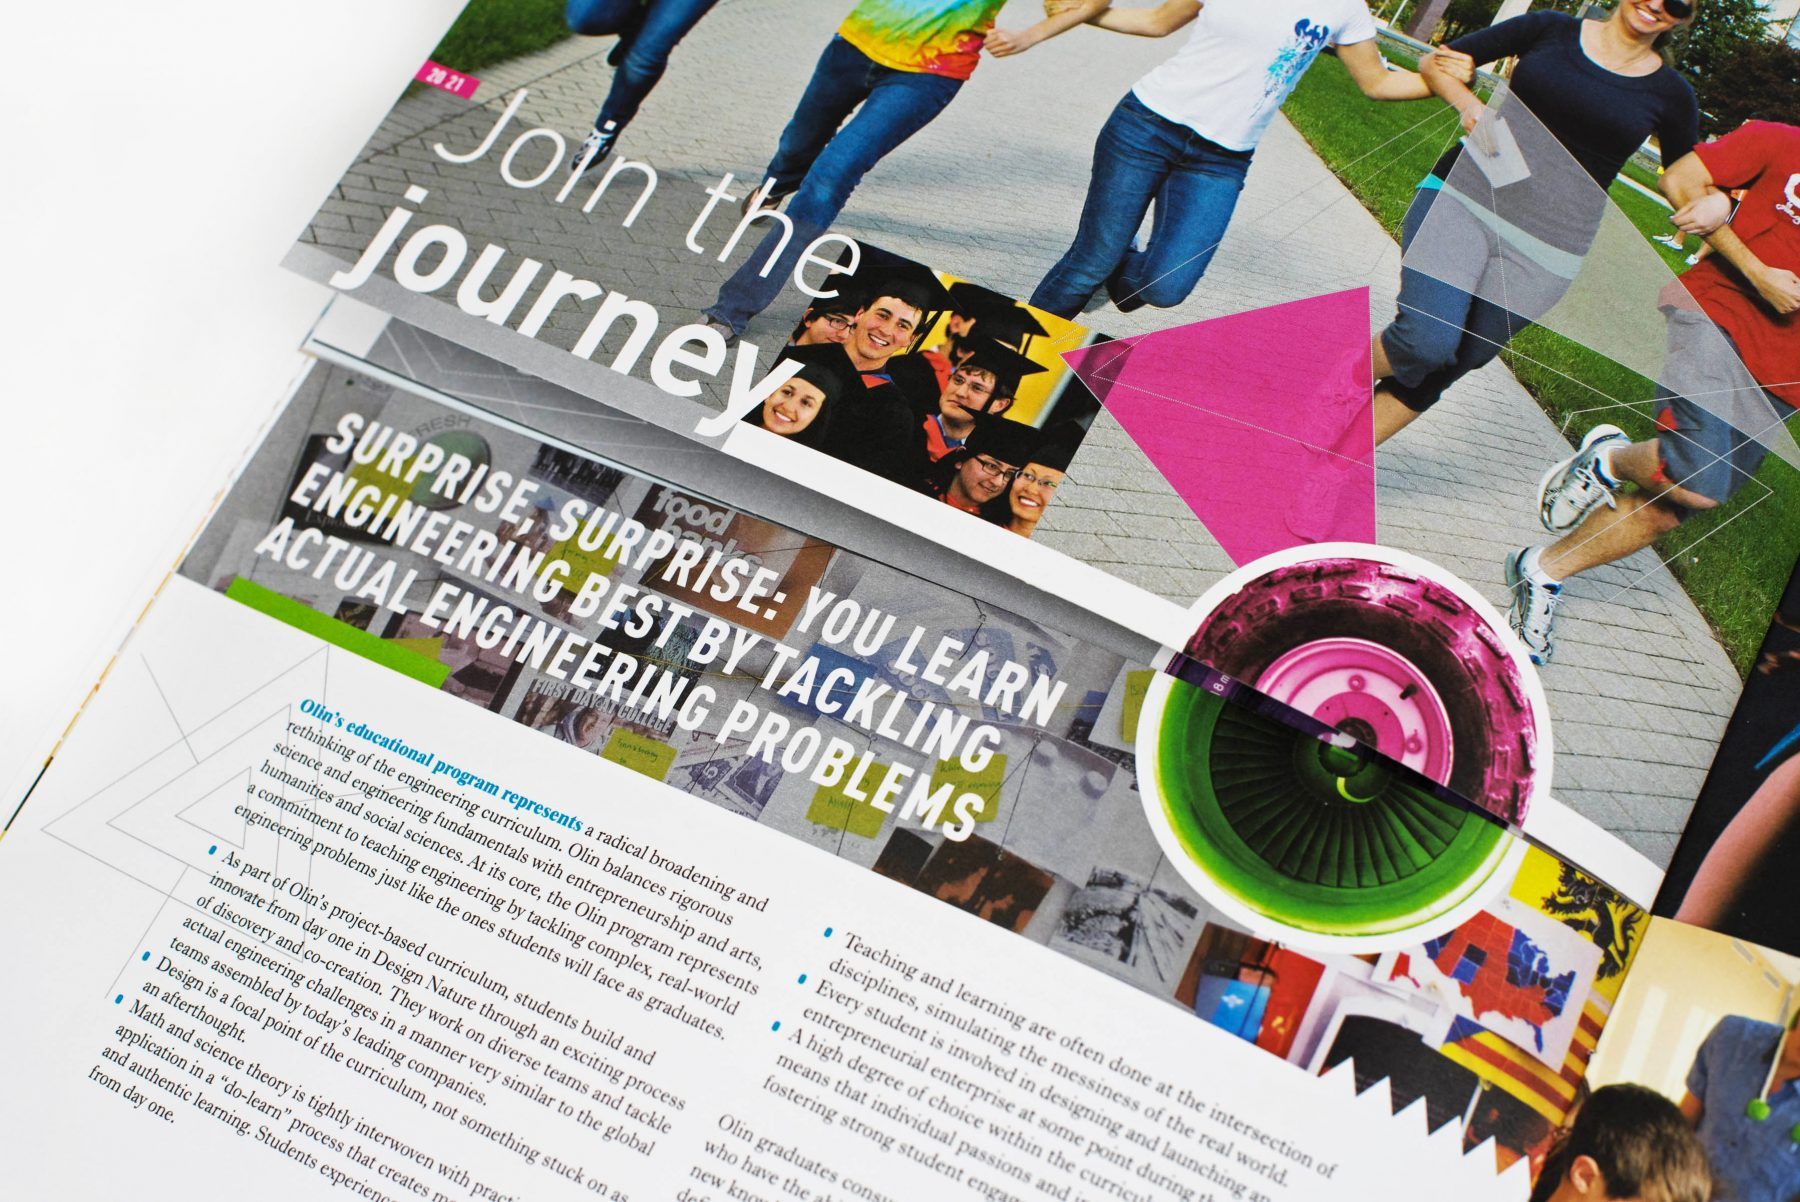 Olin College of Engineering Prospectus interior close-up: Join the Journey